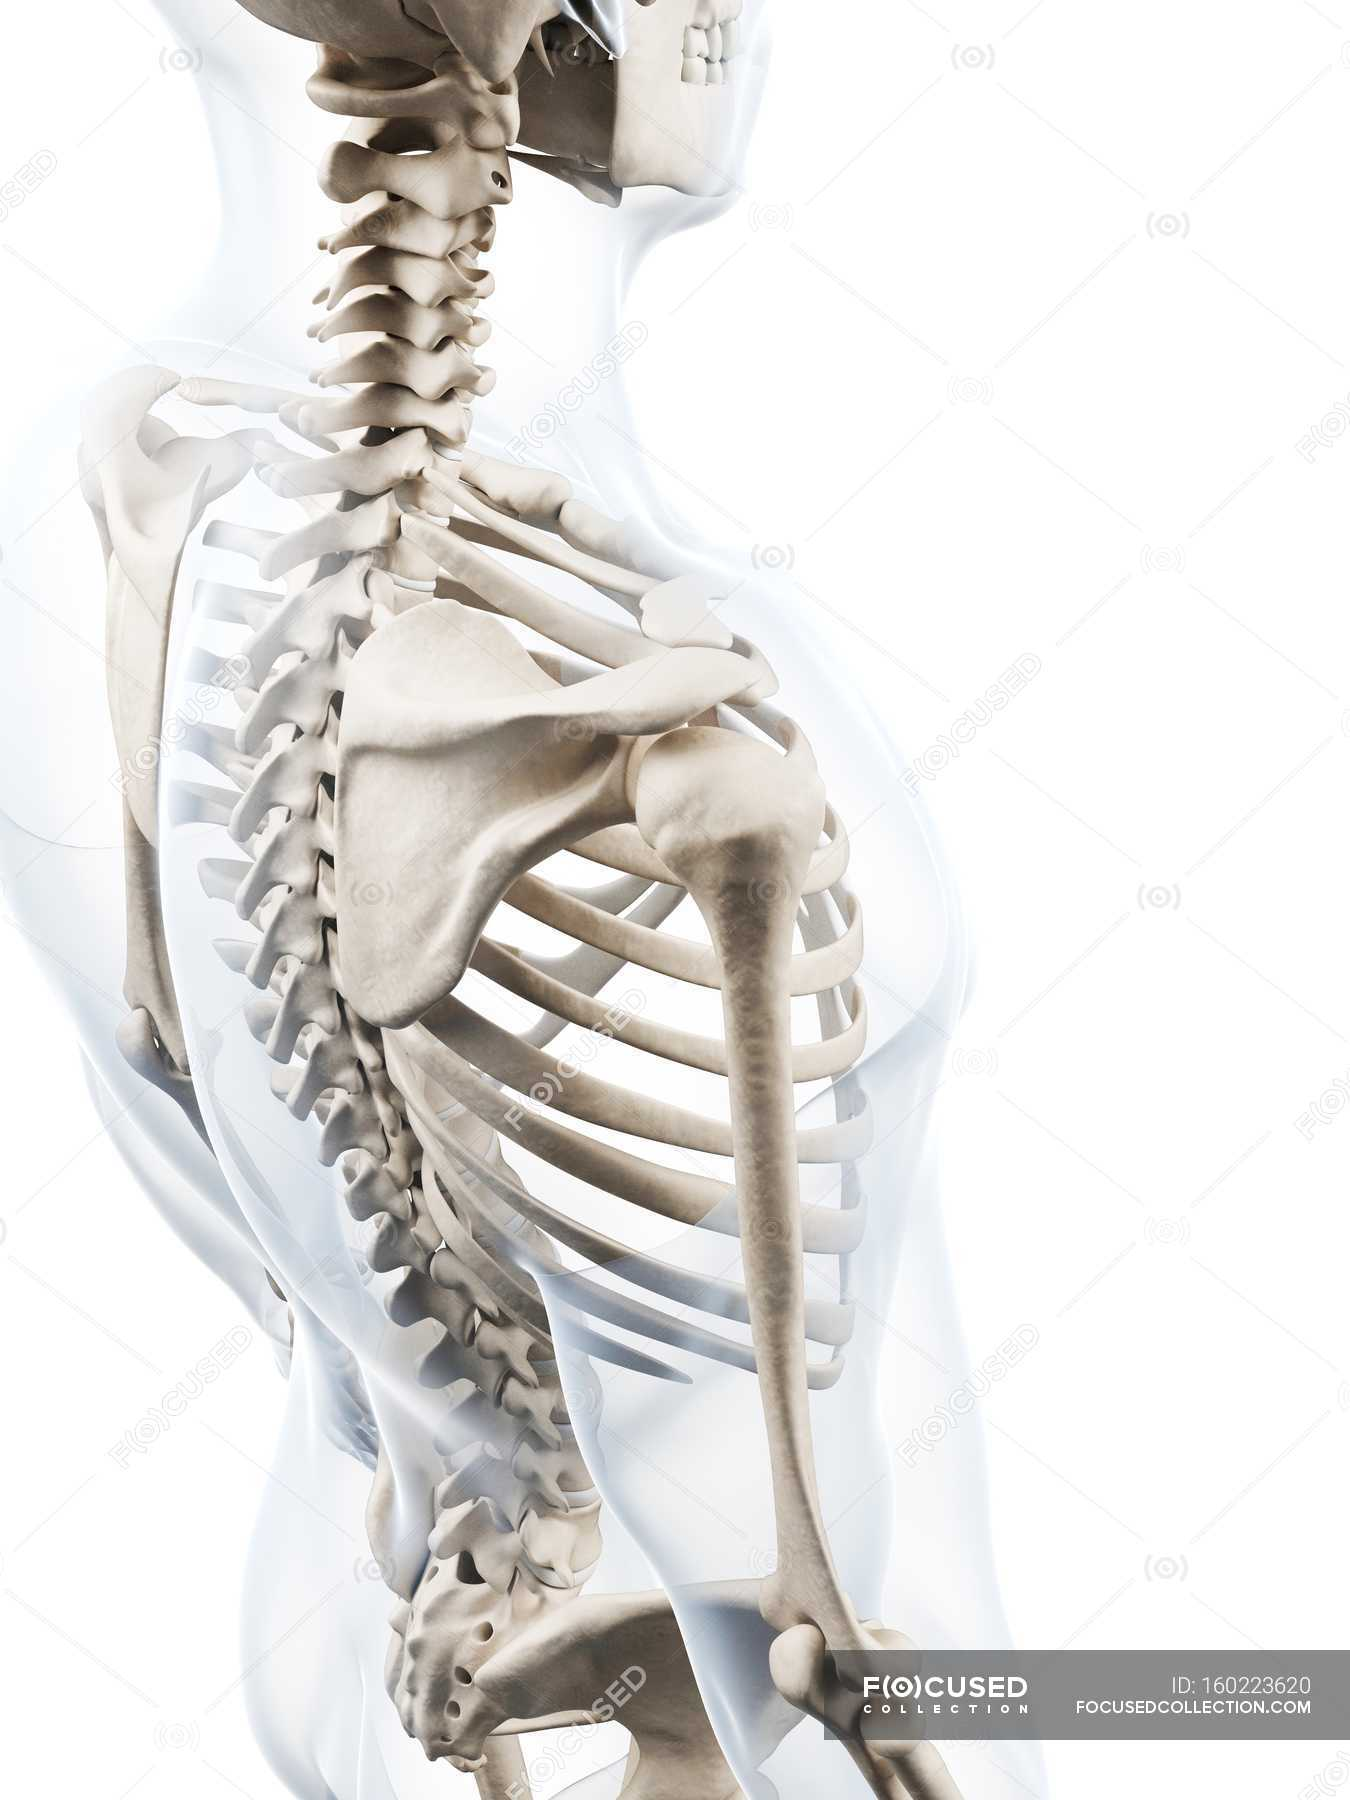 Shoulder girdle bone structure — Stock Photo | #160223620